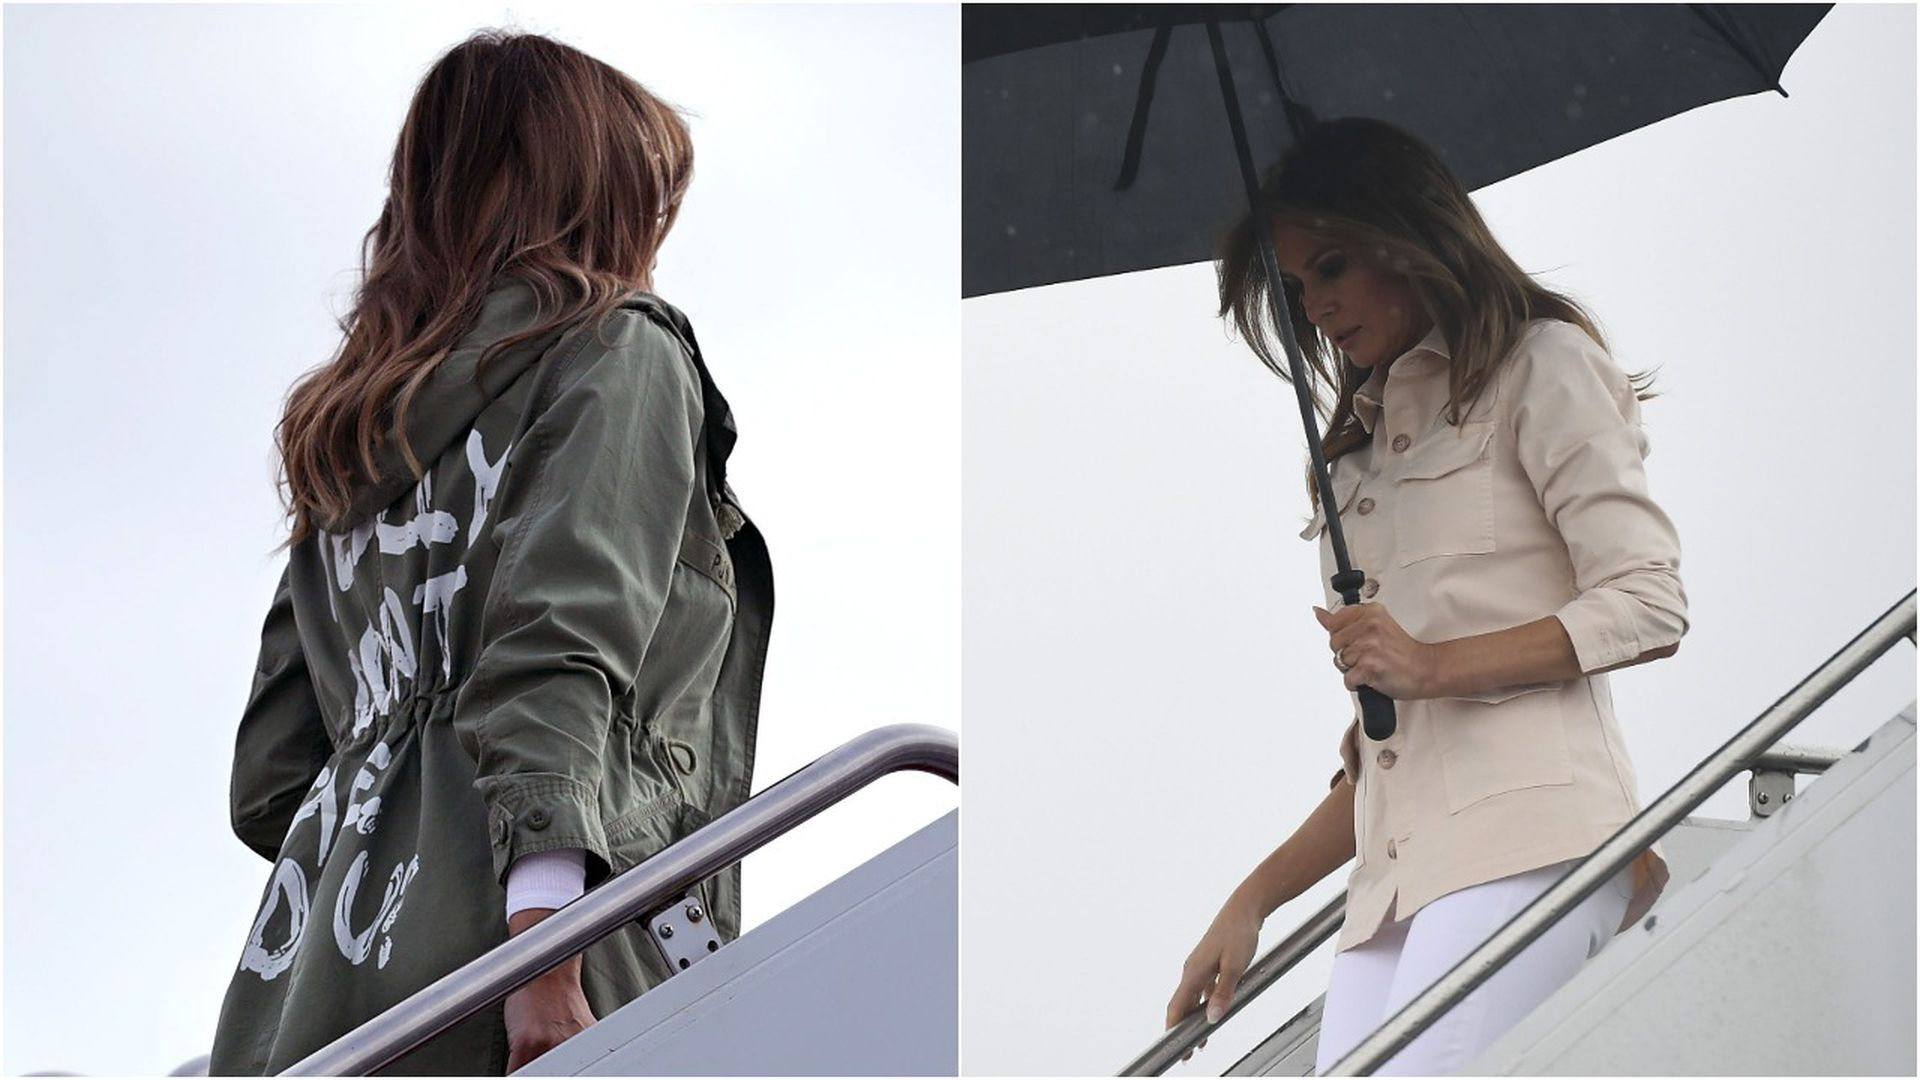 Melania Trump boarding and de-boarding the plane in different outfits.